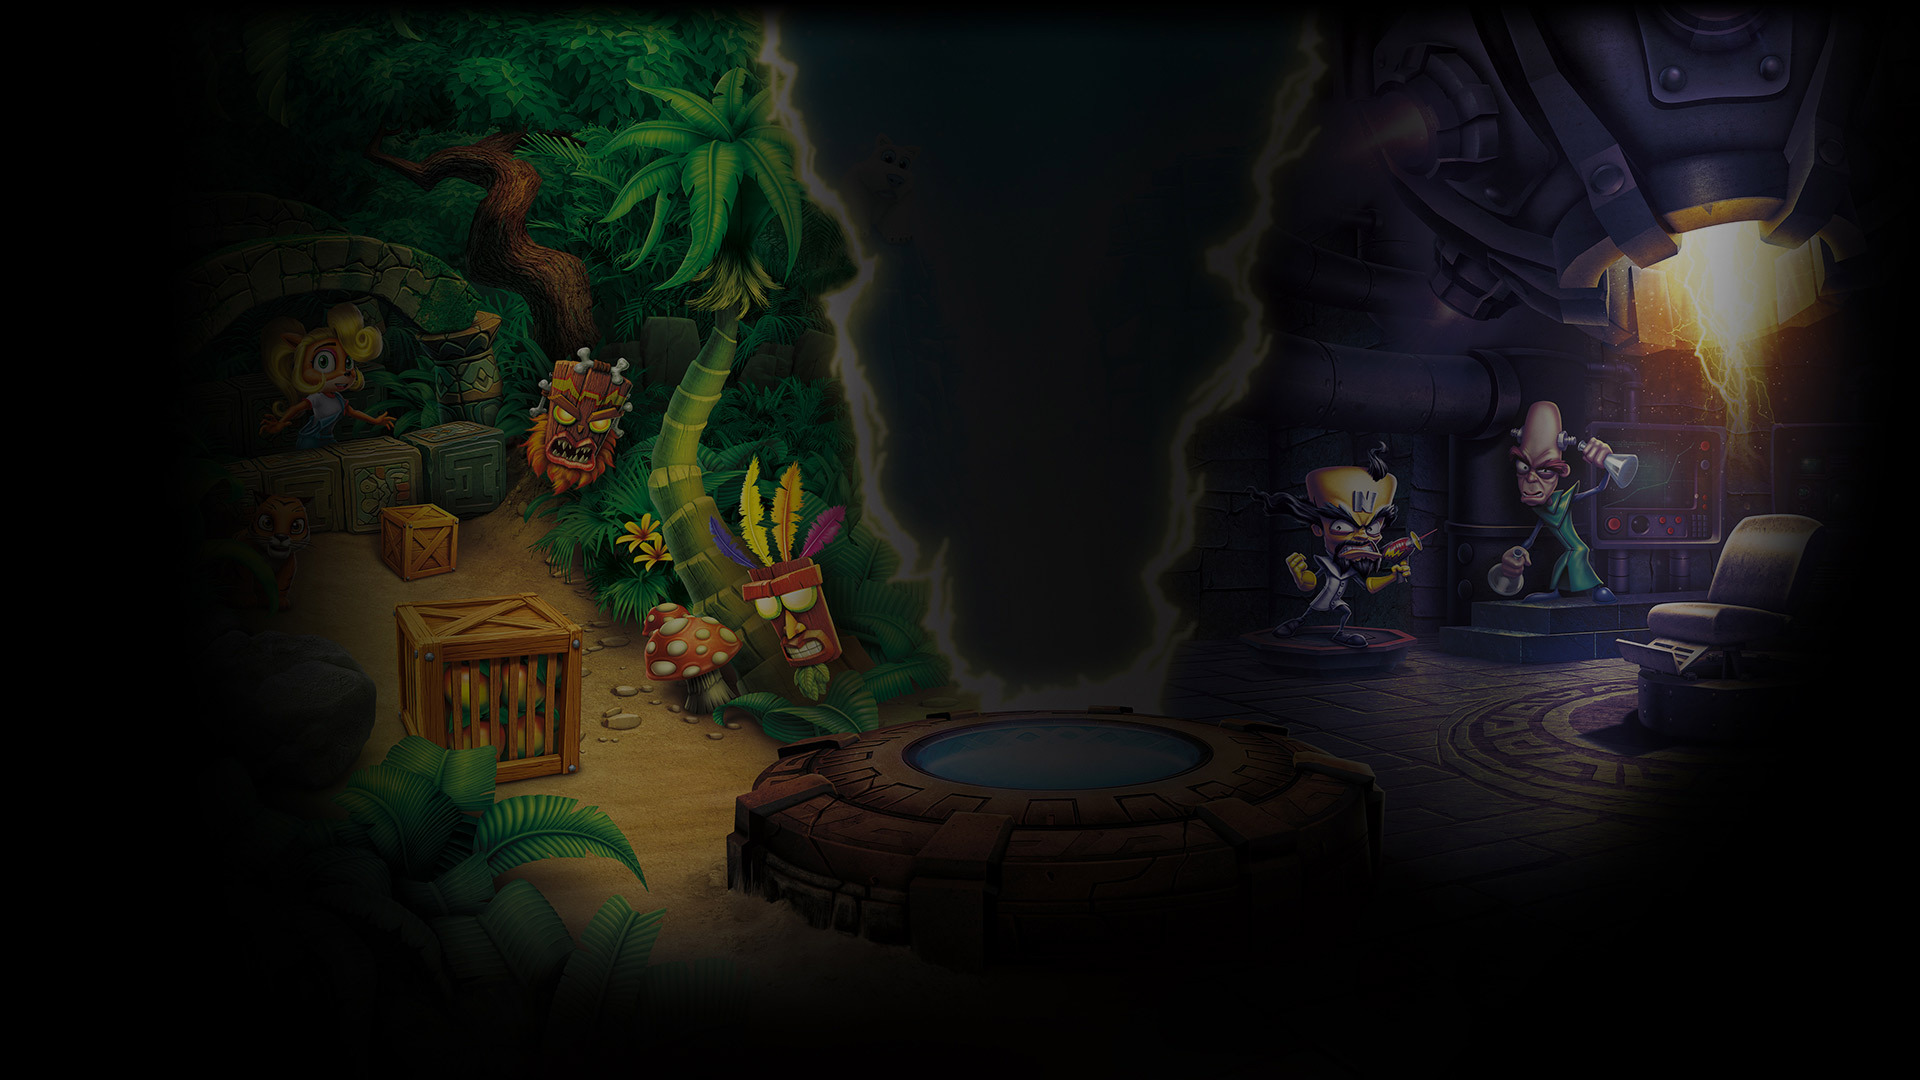 Steam Card Exchange Showcase Crash Bandicoot N Sane Trilogy Upsilon Circuit Is One Part Game Show Video And All Backgrounds